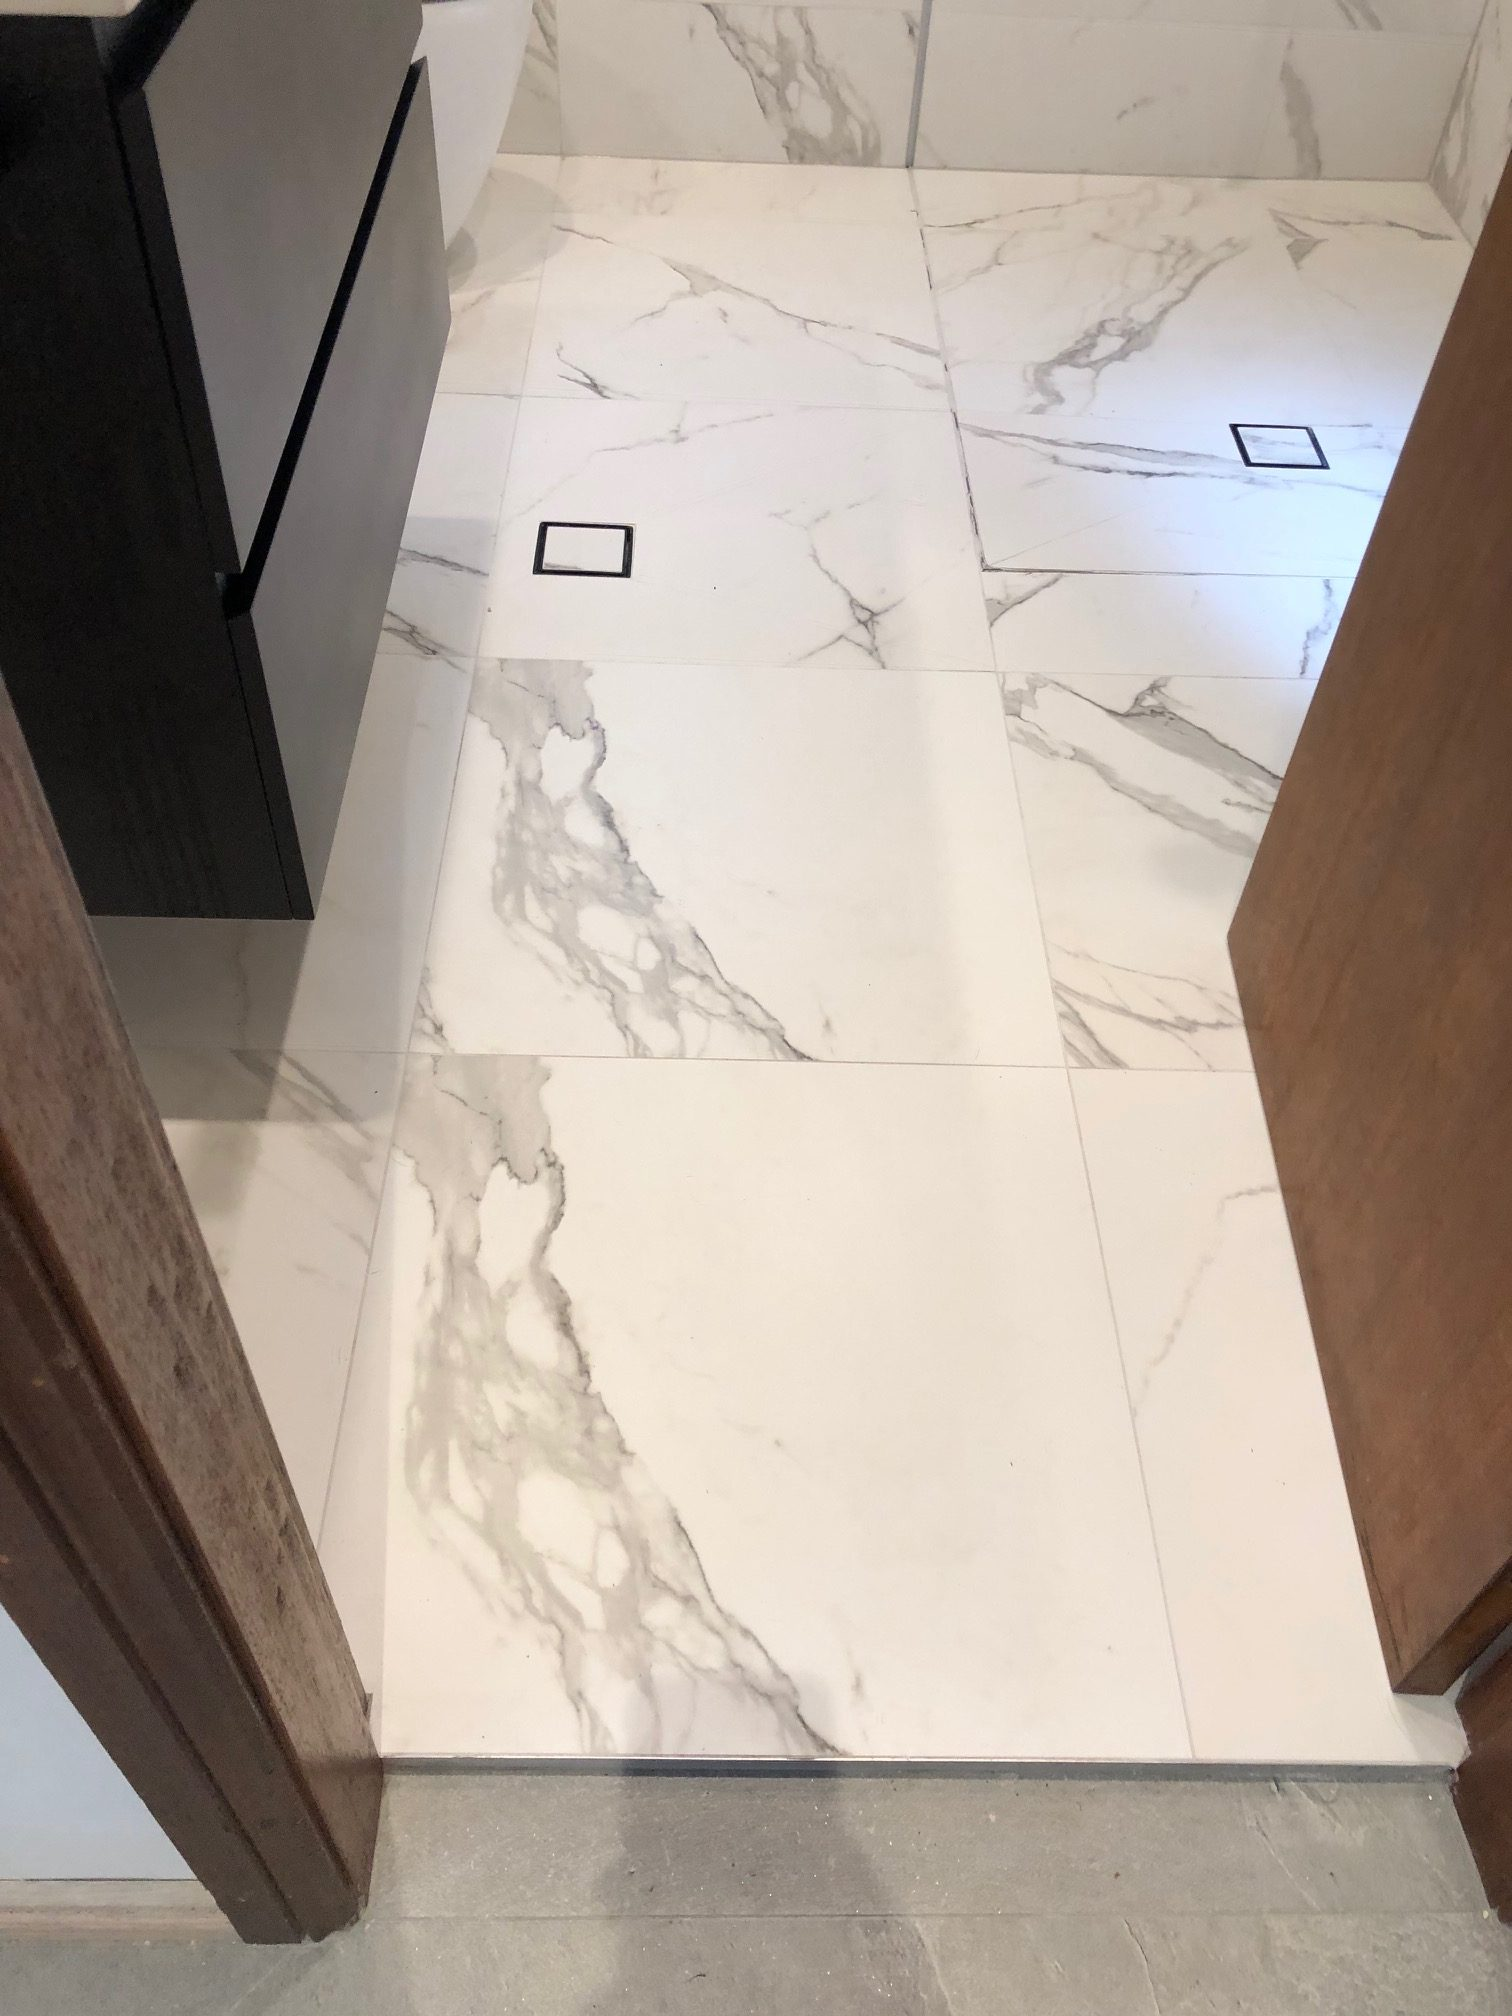 Bathroom floor with Warmtech Inscreed heating system